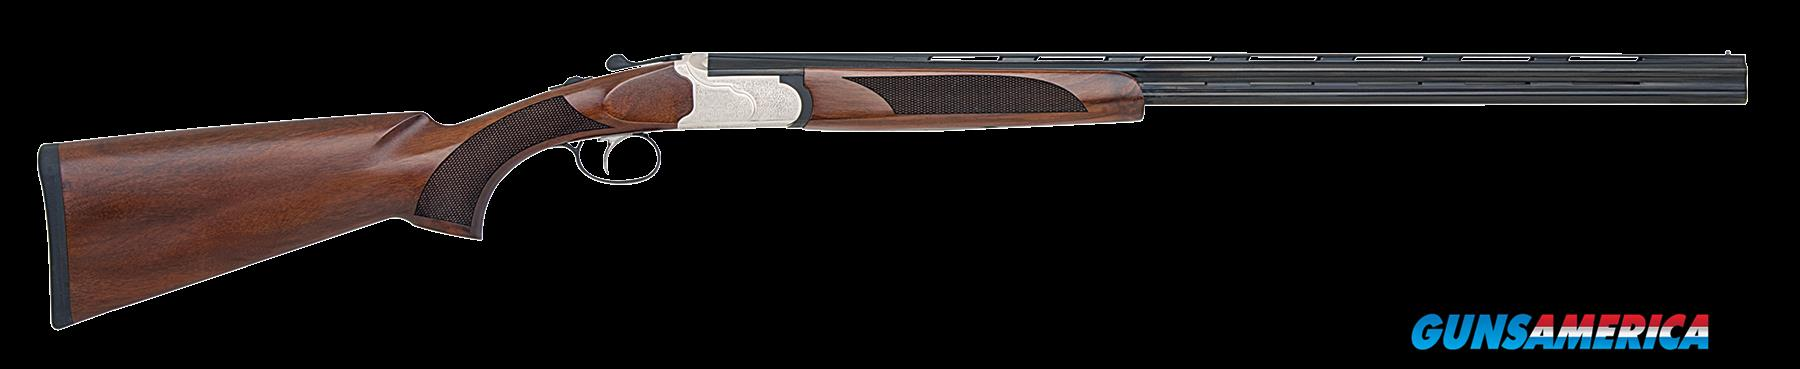 "Mossberg 75417 Silver Reserve II Field with Extractors Over/Under 410 Gauge 26"" Fixed F/M 3"" Black  Guns > Shotguns > Mossberg Shotguns > Over/Under"